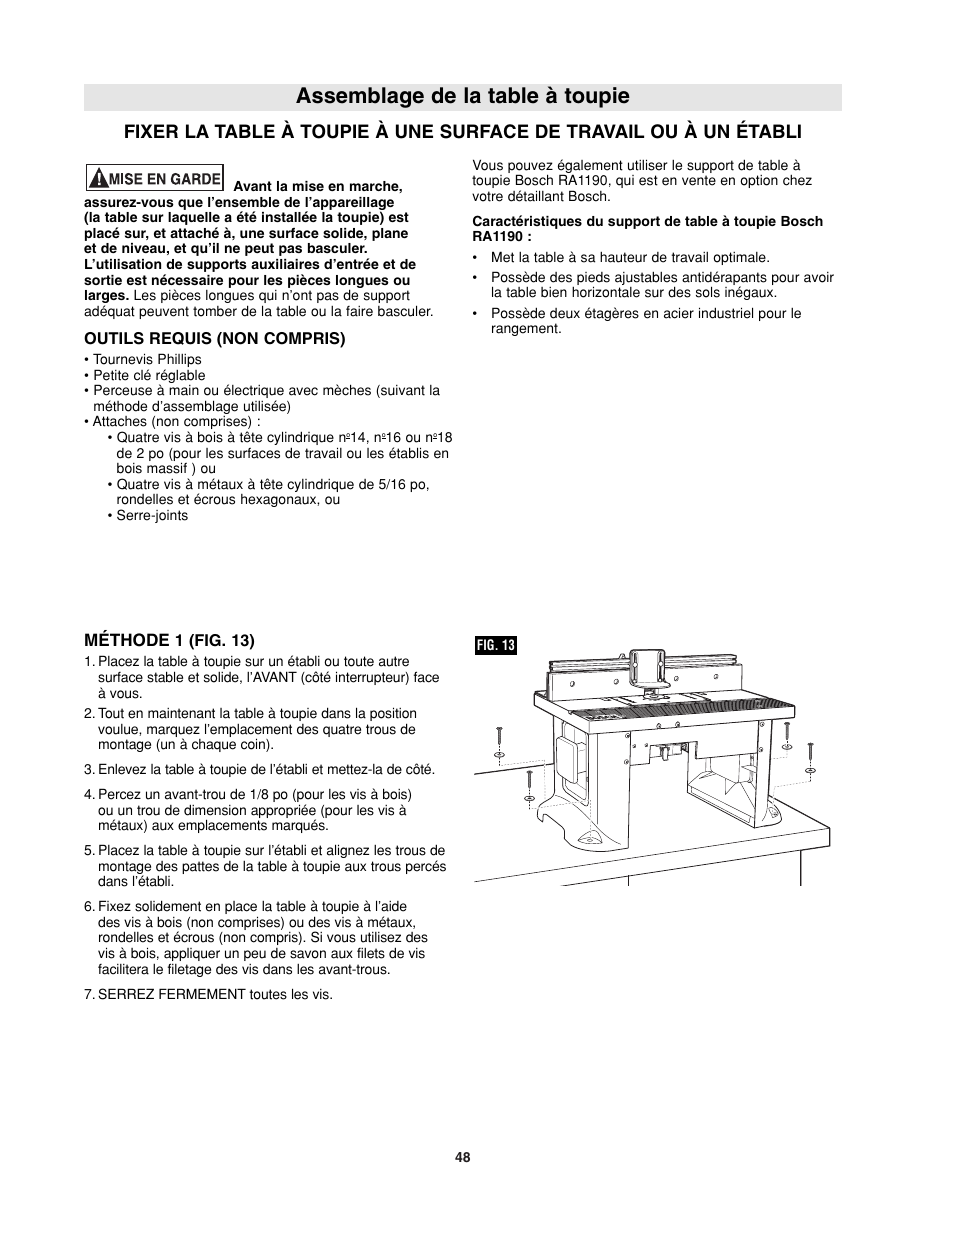 Assemblage de la table à toupie | Bosch RA1181 User Manual | Page 48 ...